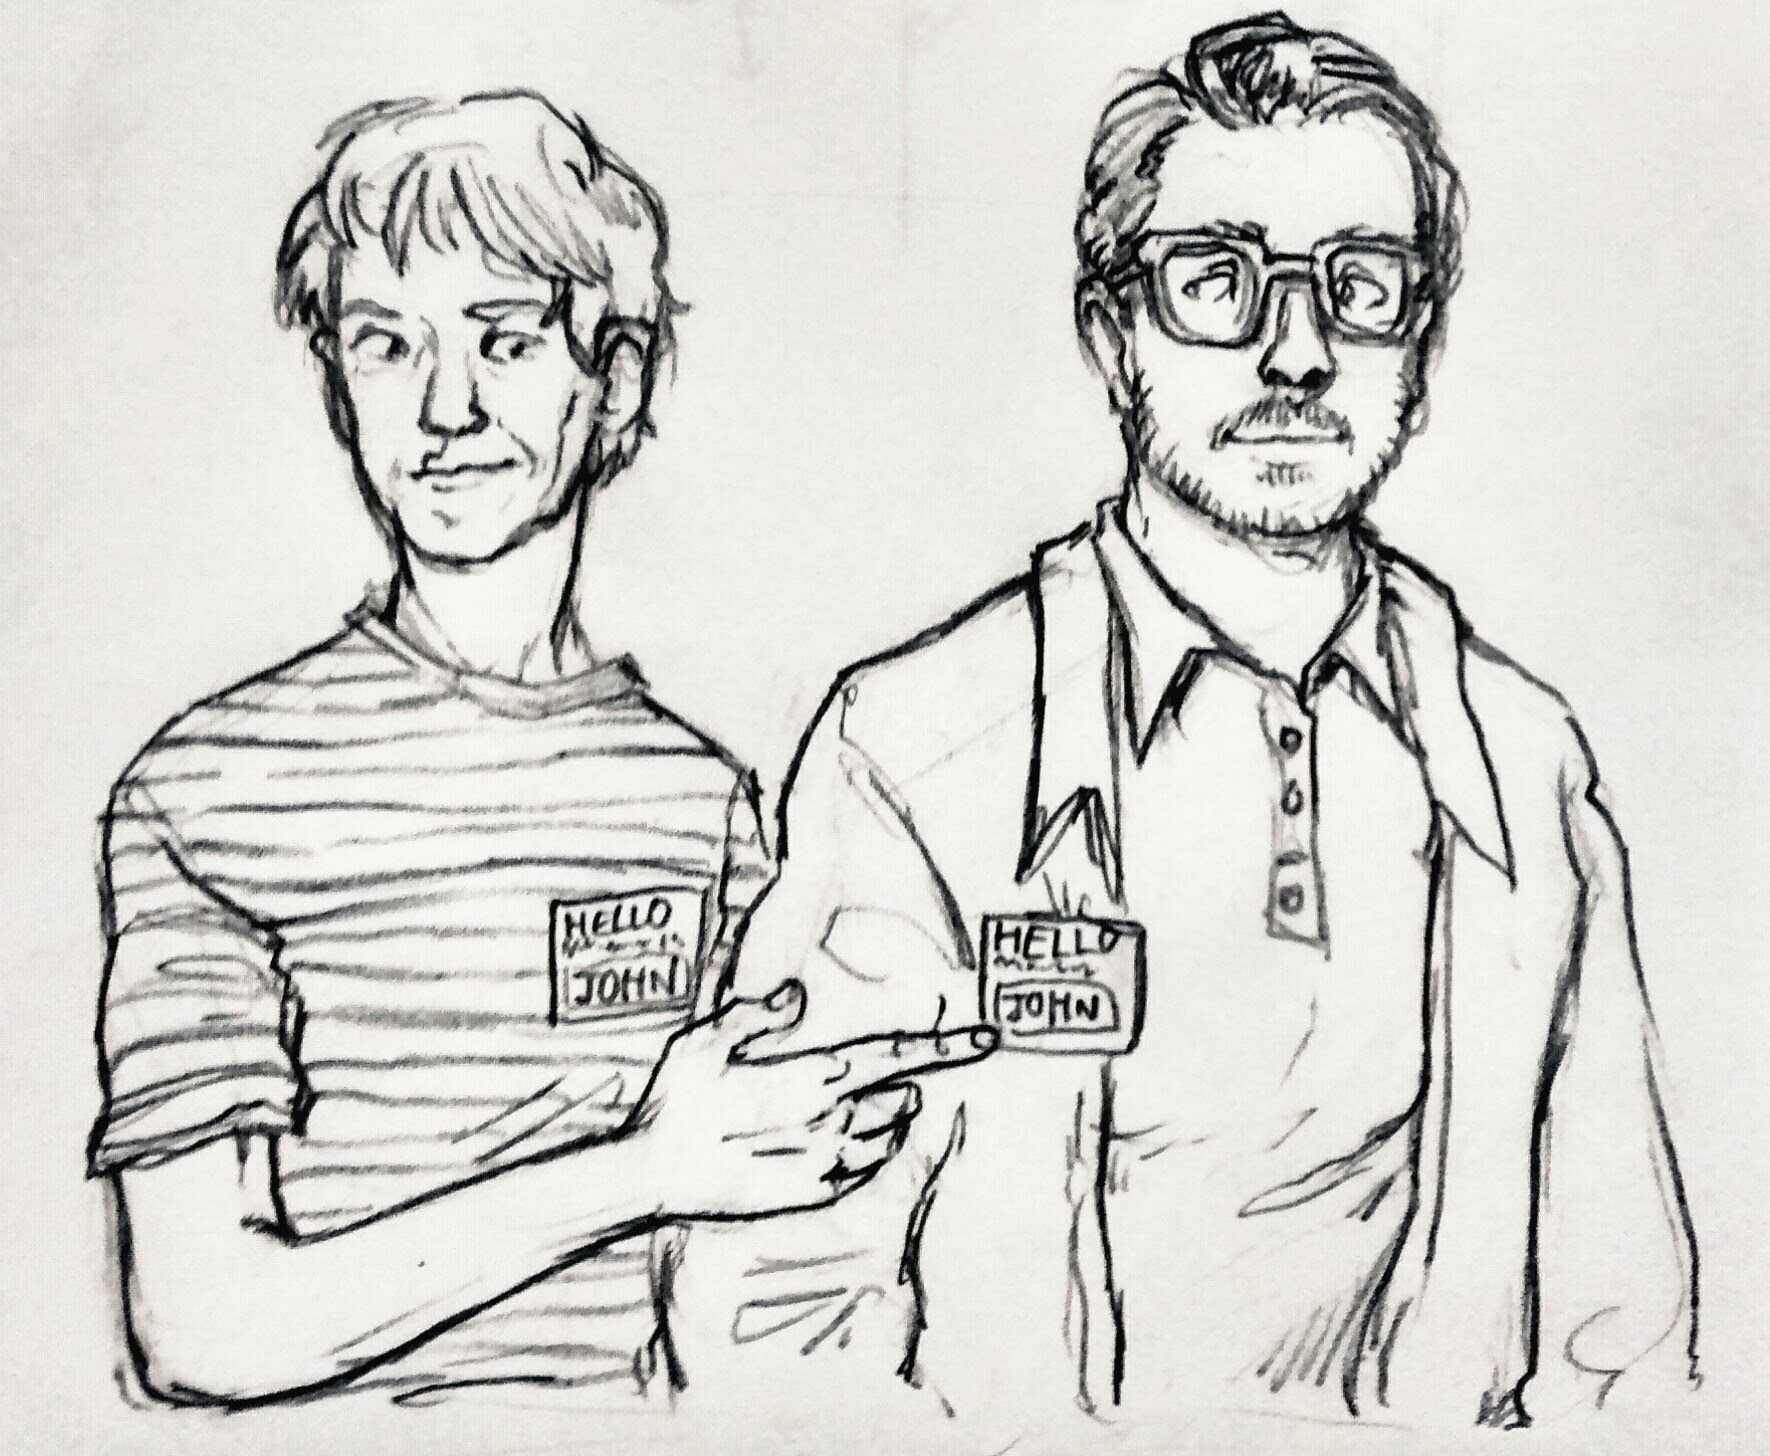 My very first drawing of John and John